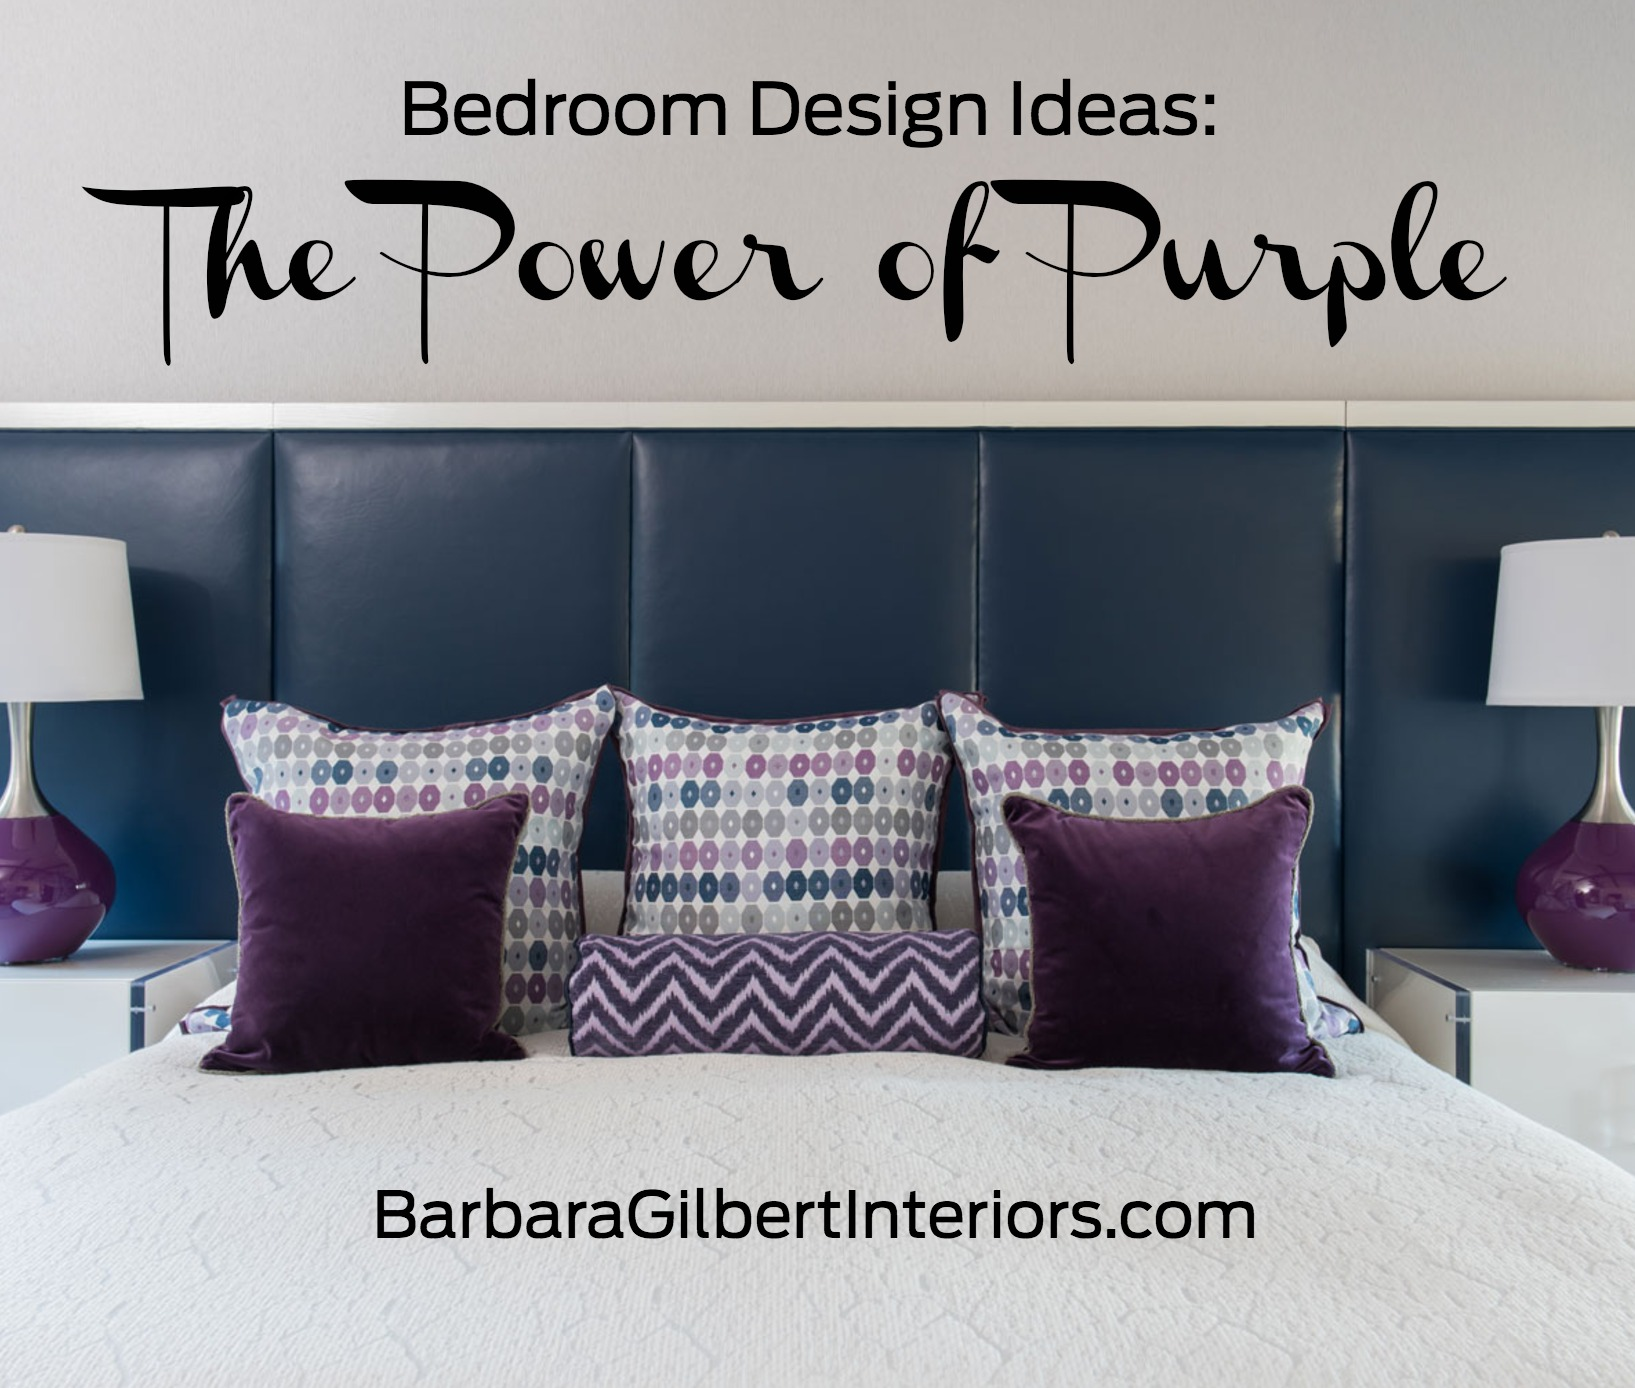 Bedroom design ideas the power of purple barbara for Passionate bedroom designs